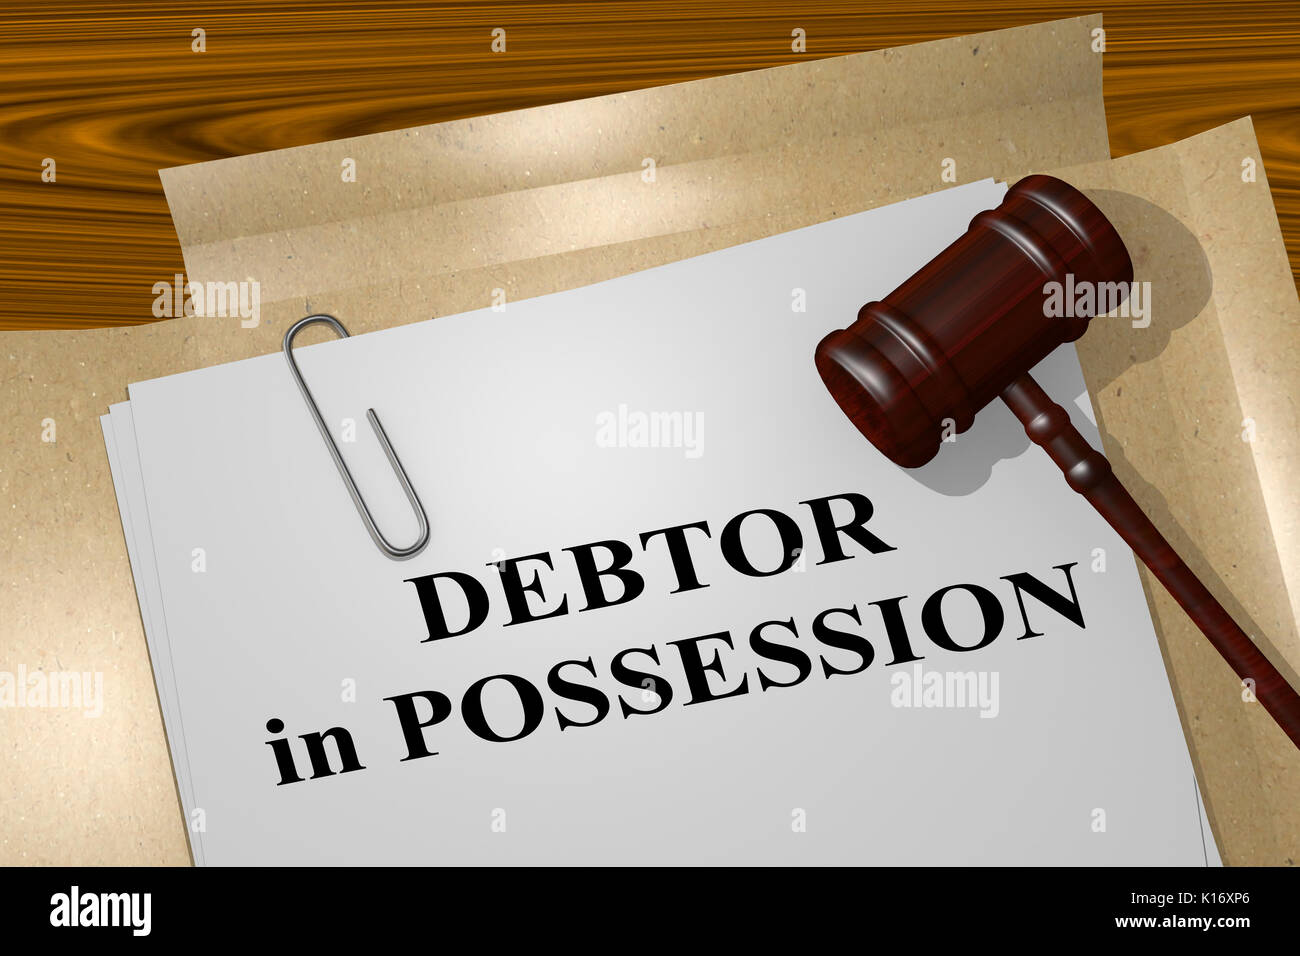 3D illustration of 'DEBTOR in POSSESSION' title on legal document - Stock Image